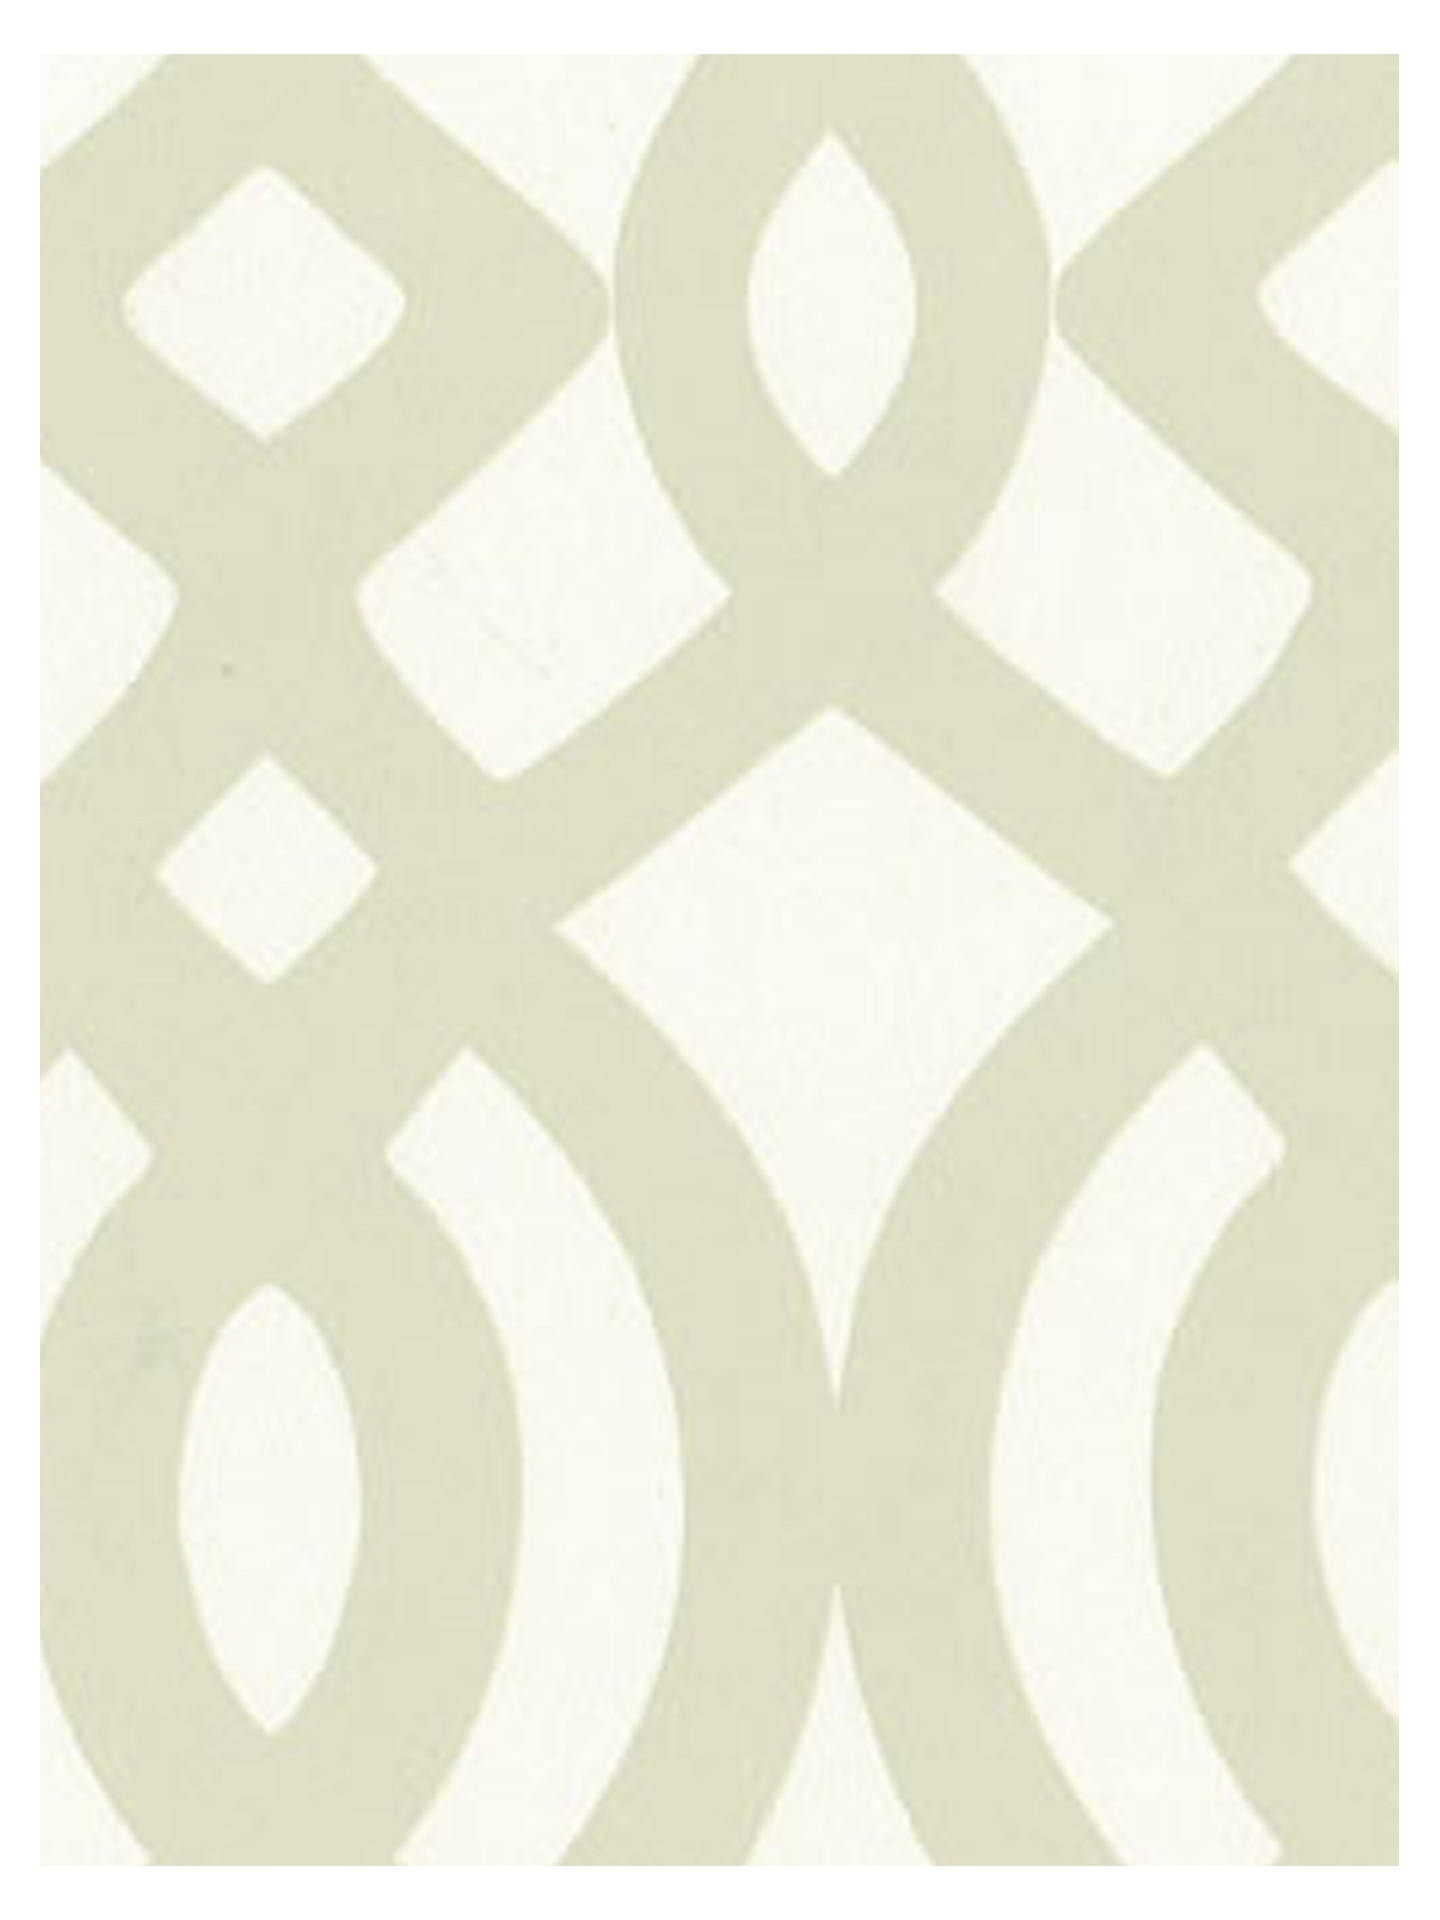 Buy Osborne & Little Du Barry Wallpaper, Cream, W6013-03 Online at johnlewis.com